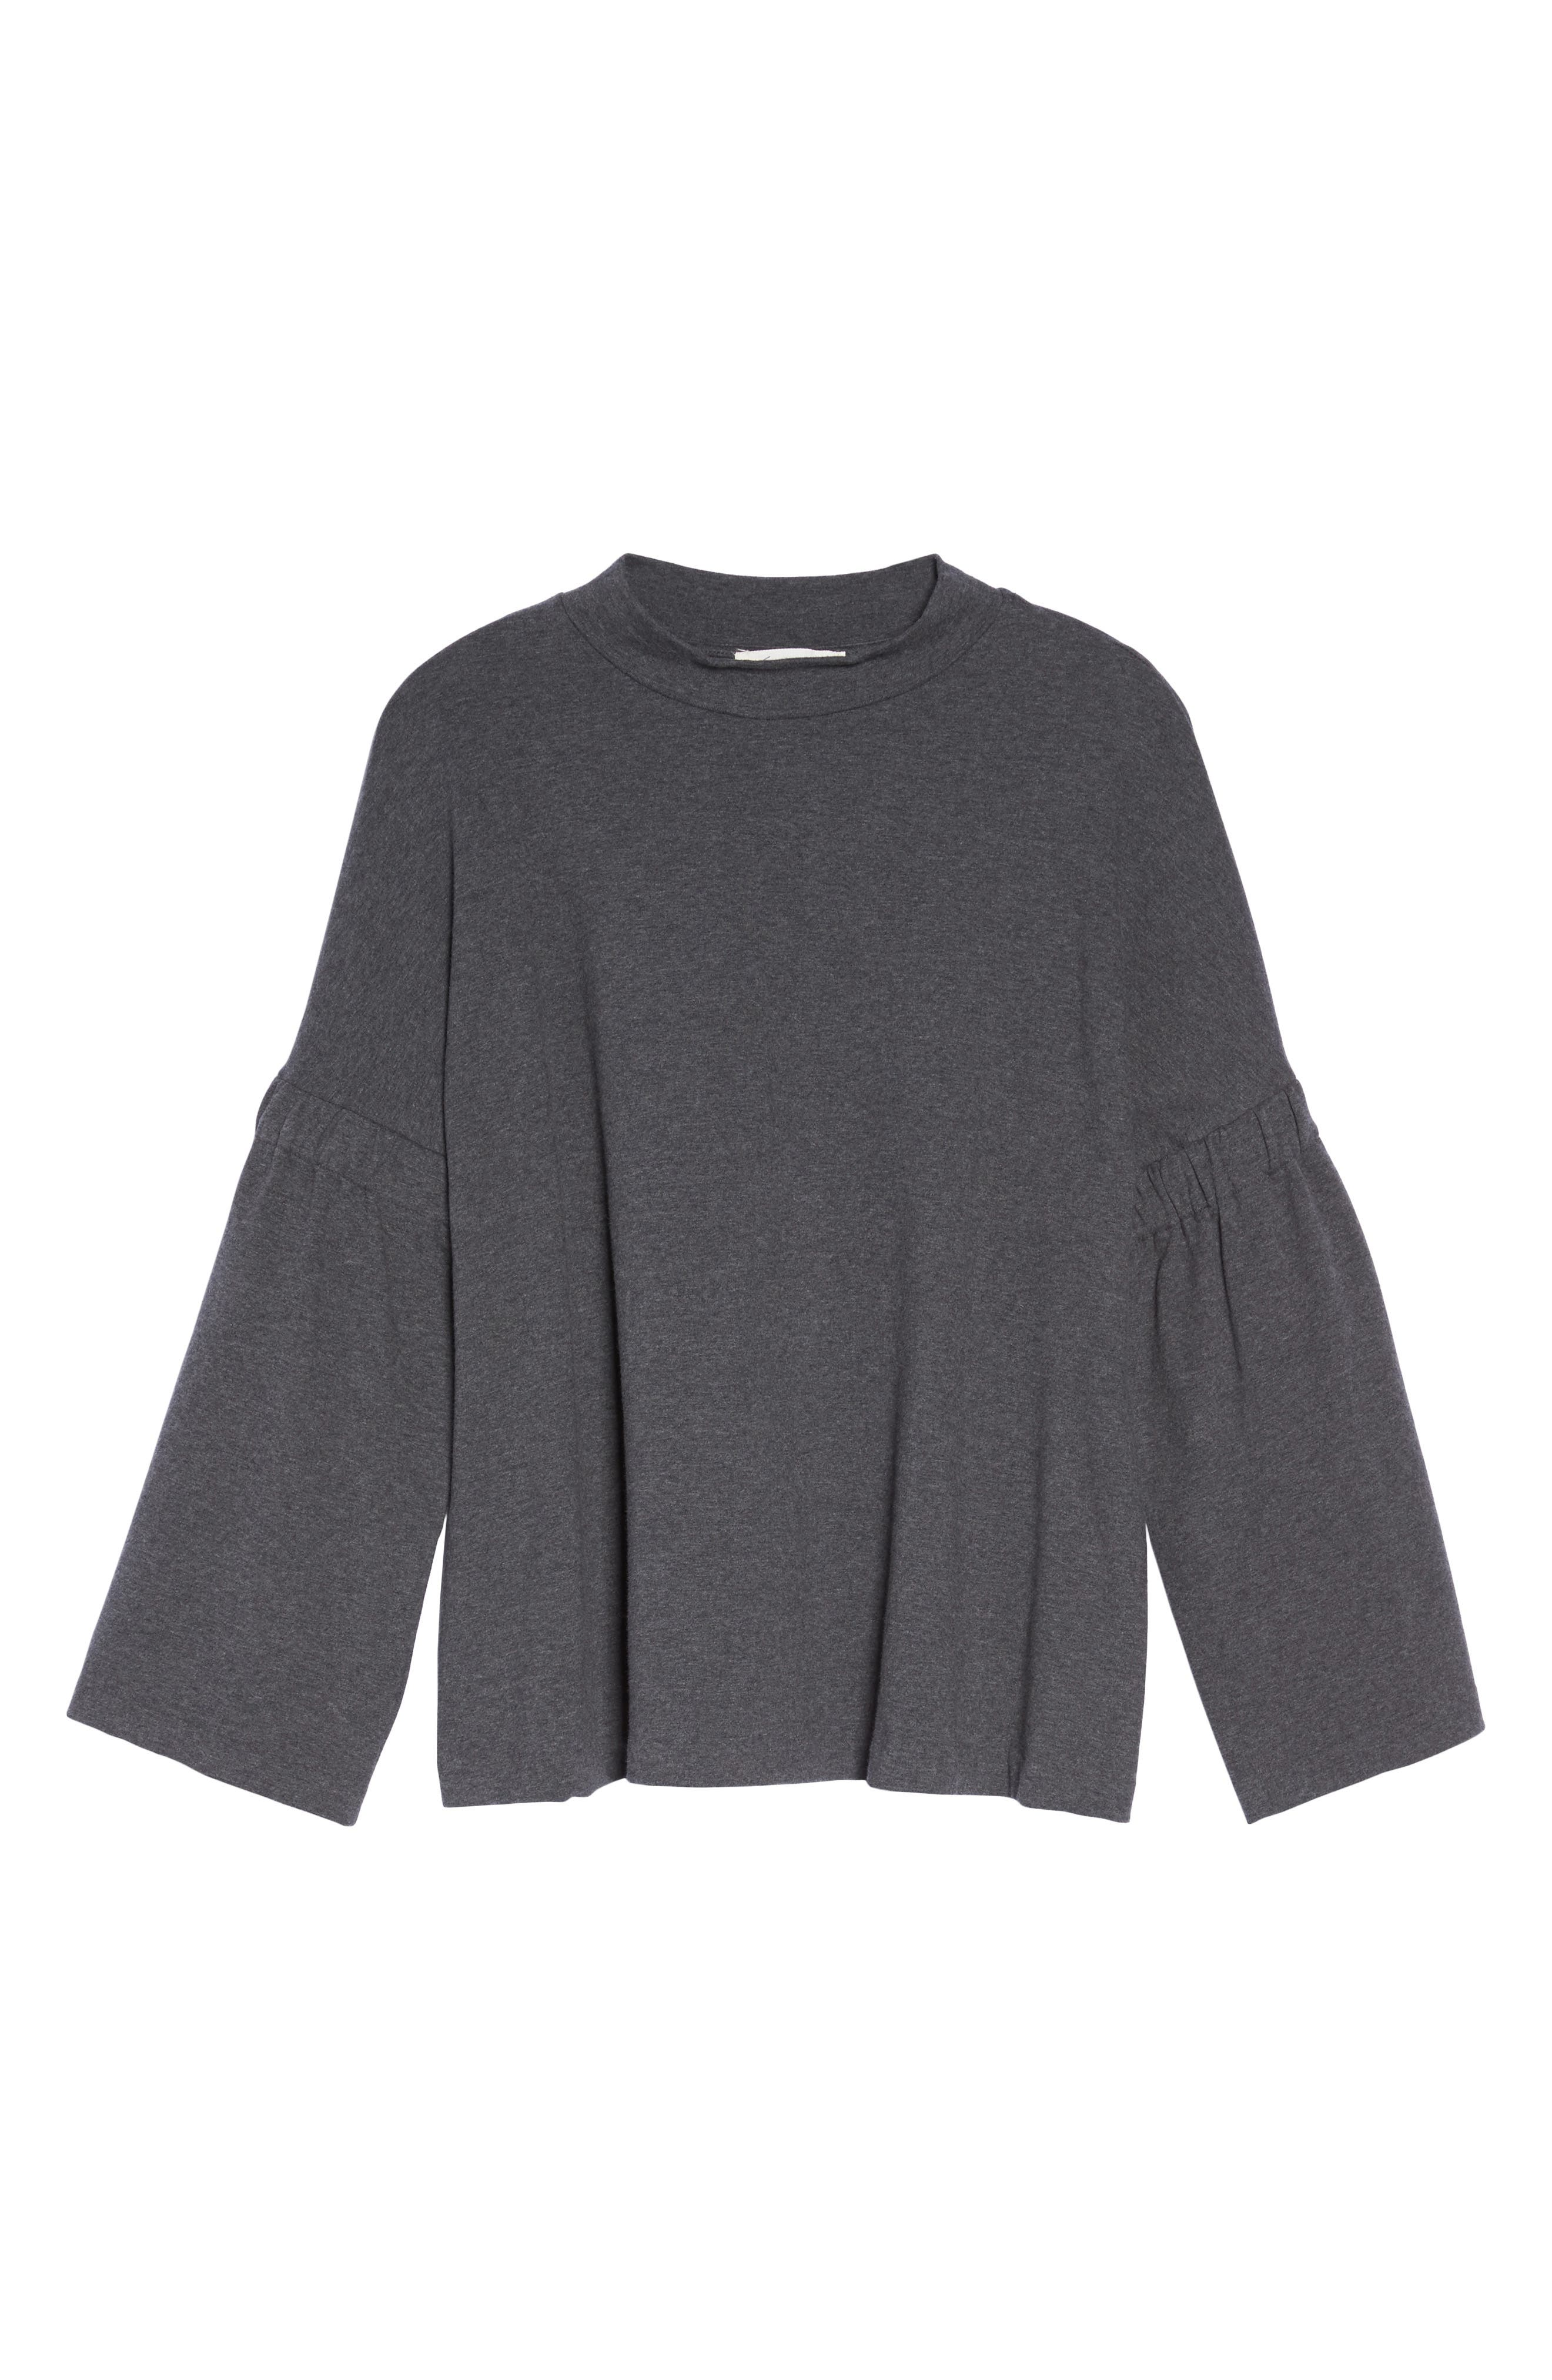 Bell Sleeve Top,                             Alternate thumbnail 6, color,                             MED HEATHER GREY